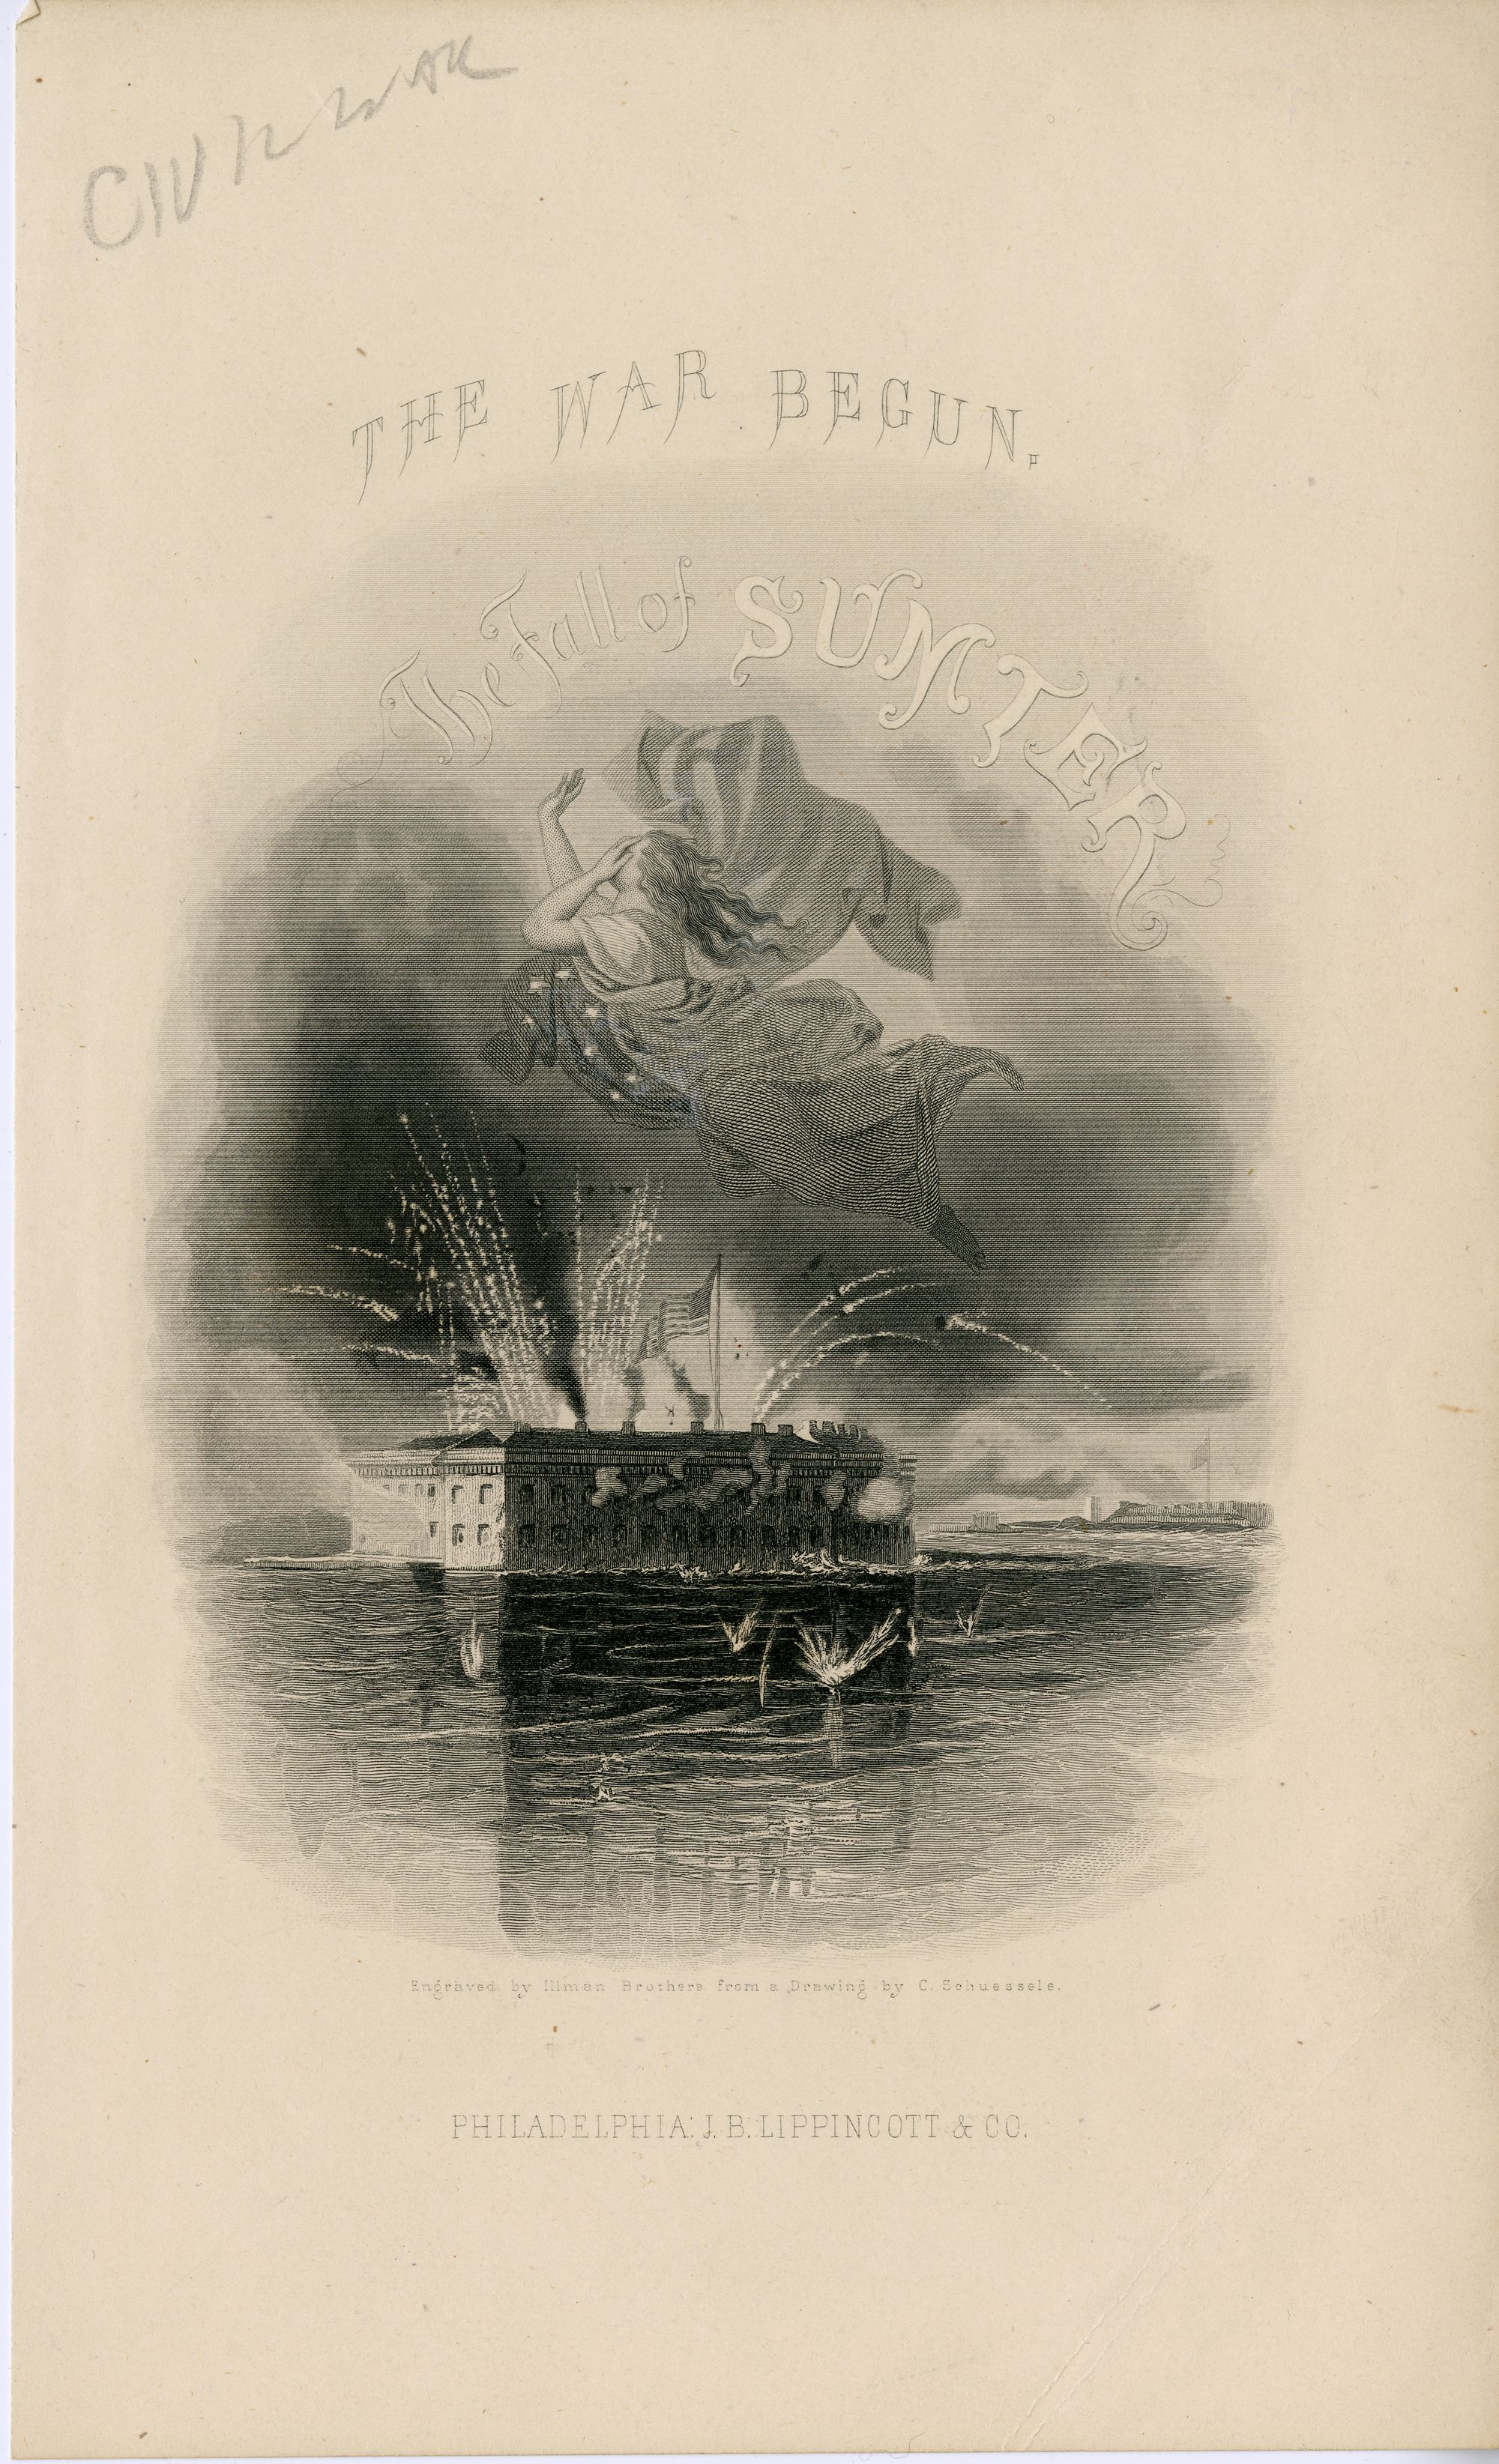 """April 11, 1861: The Civil War begins as Confederate forces fire on Fort Sumter in South Carolina. This engraving is """"The War Begun. The Fall of Sumter"""" and is by Illman Brothers from a drawing by C. Schuessele. Credit: Warshaw Collection of Business Americana, Civil War series, Archives Center, National Museum of American History."""